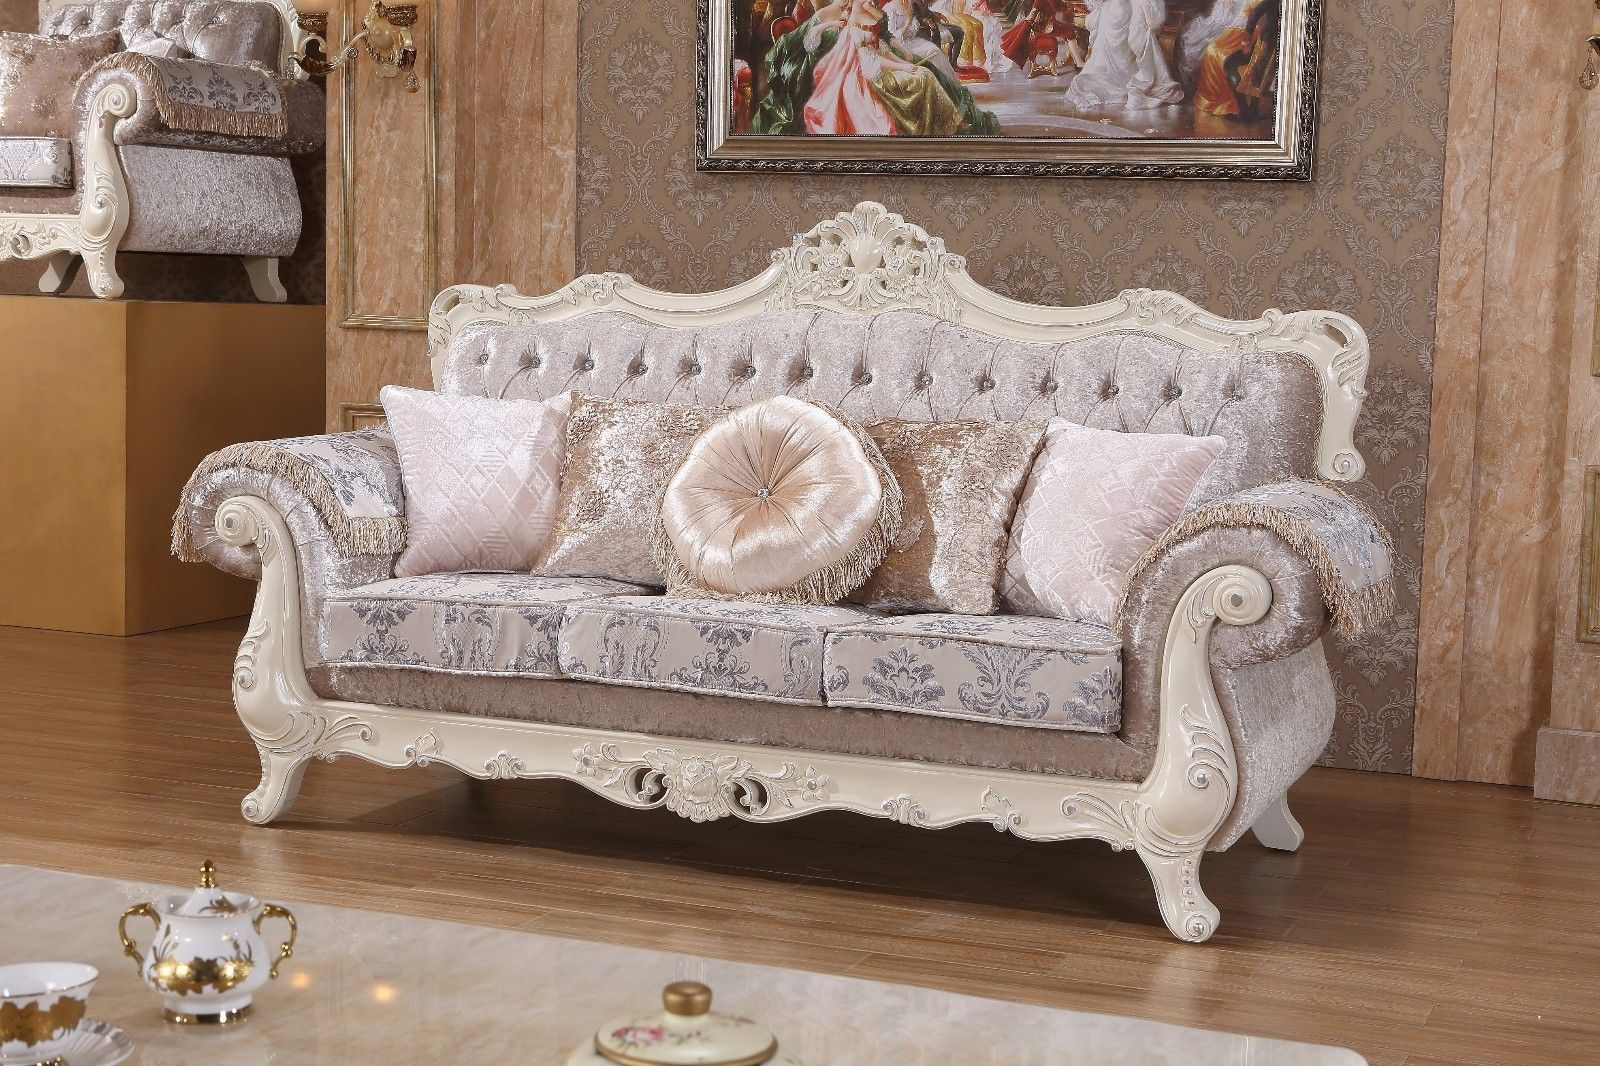 Meridian 638 Venice Living Room Set 3pcs in Silver Crystal Traditional Style